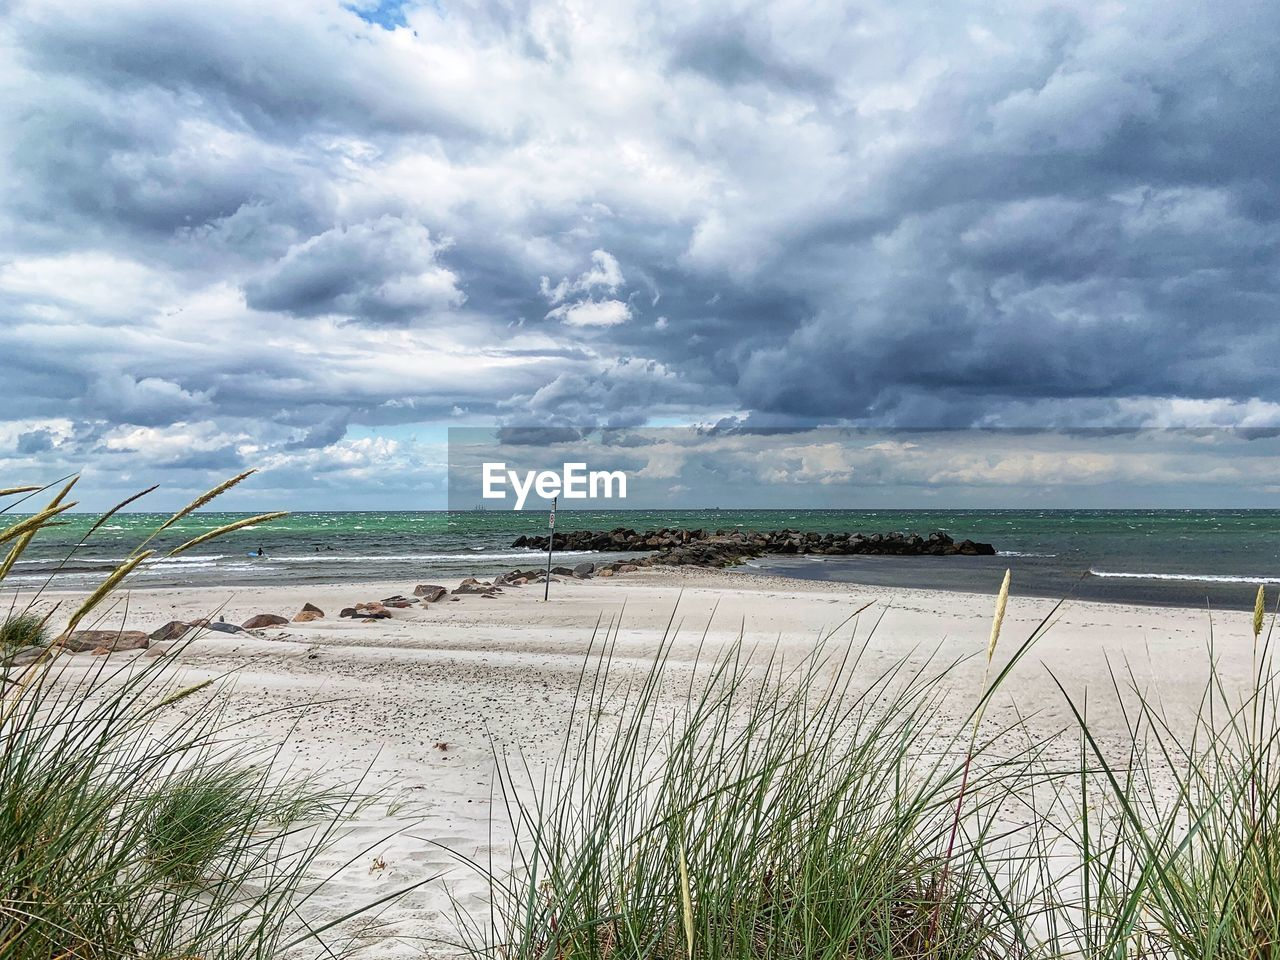 cloud - sky, sky, water, beauty in nature, plant, scenics - nature, land, tranquility, beach, tranquil scene, sea, nature, grass, sand, growth, day, non-urban scene, no people, marram grass, outdoors, horizon over water